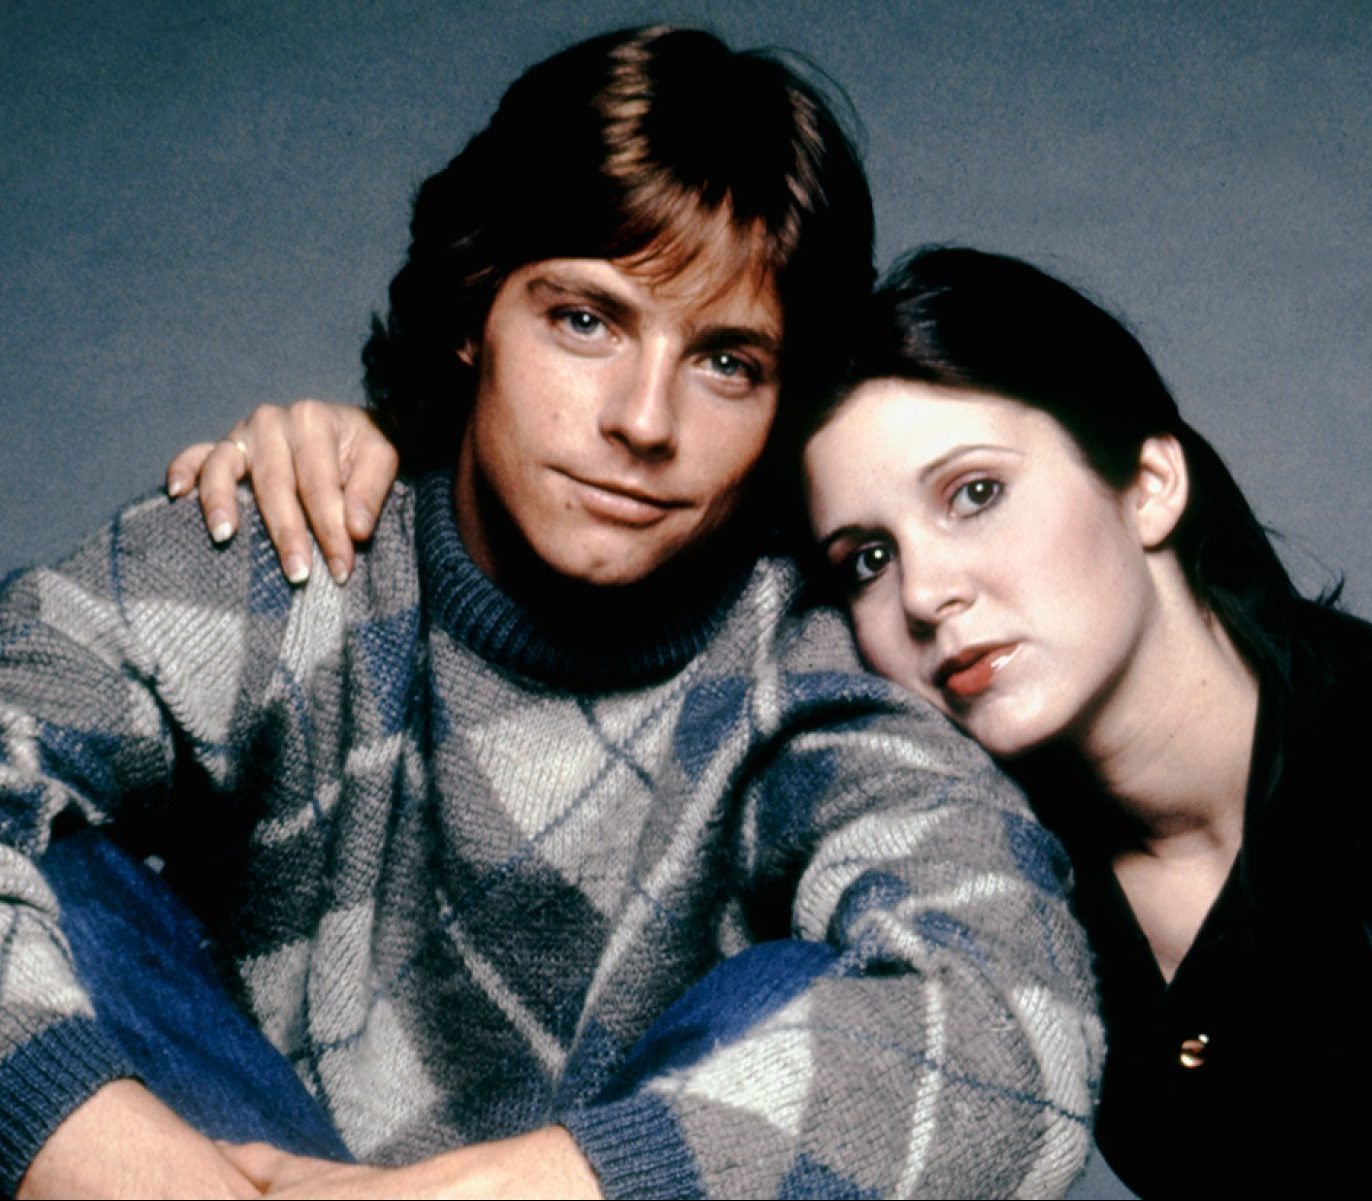 25 9 e1601473024822 20 Little-Known Facts About The Legendary Mark Hamill